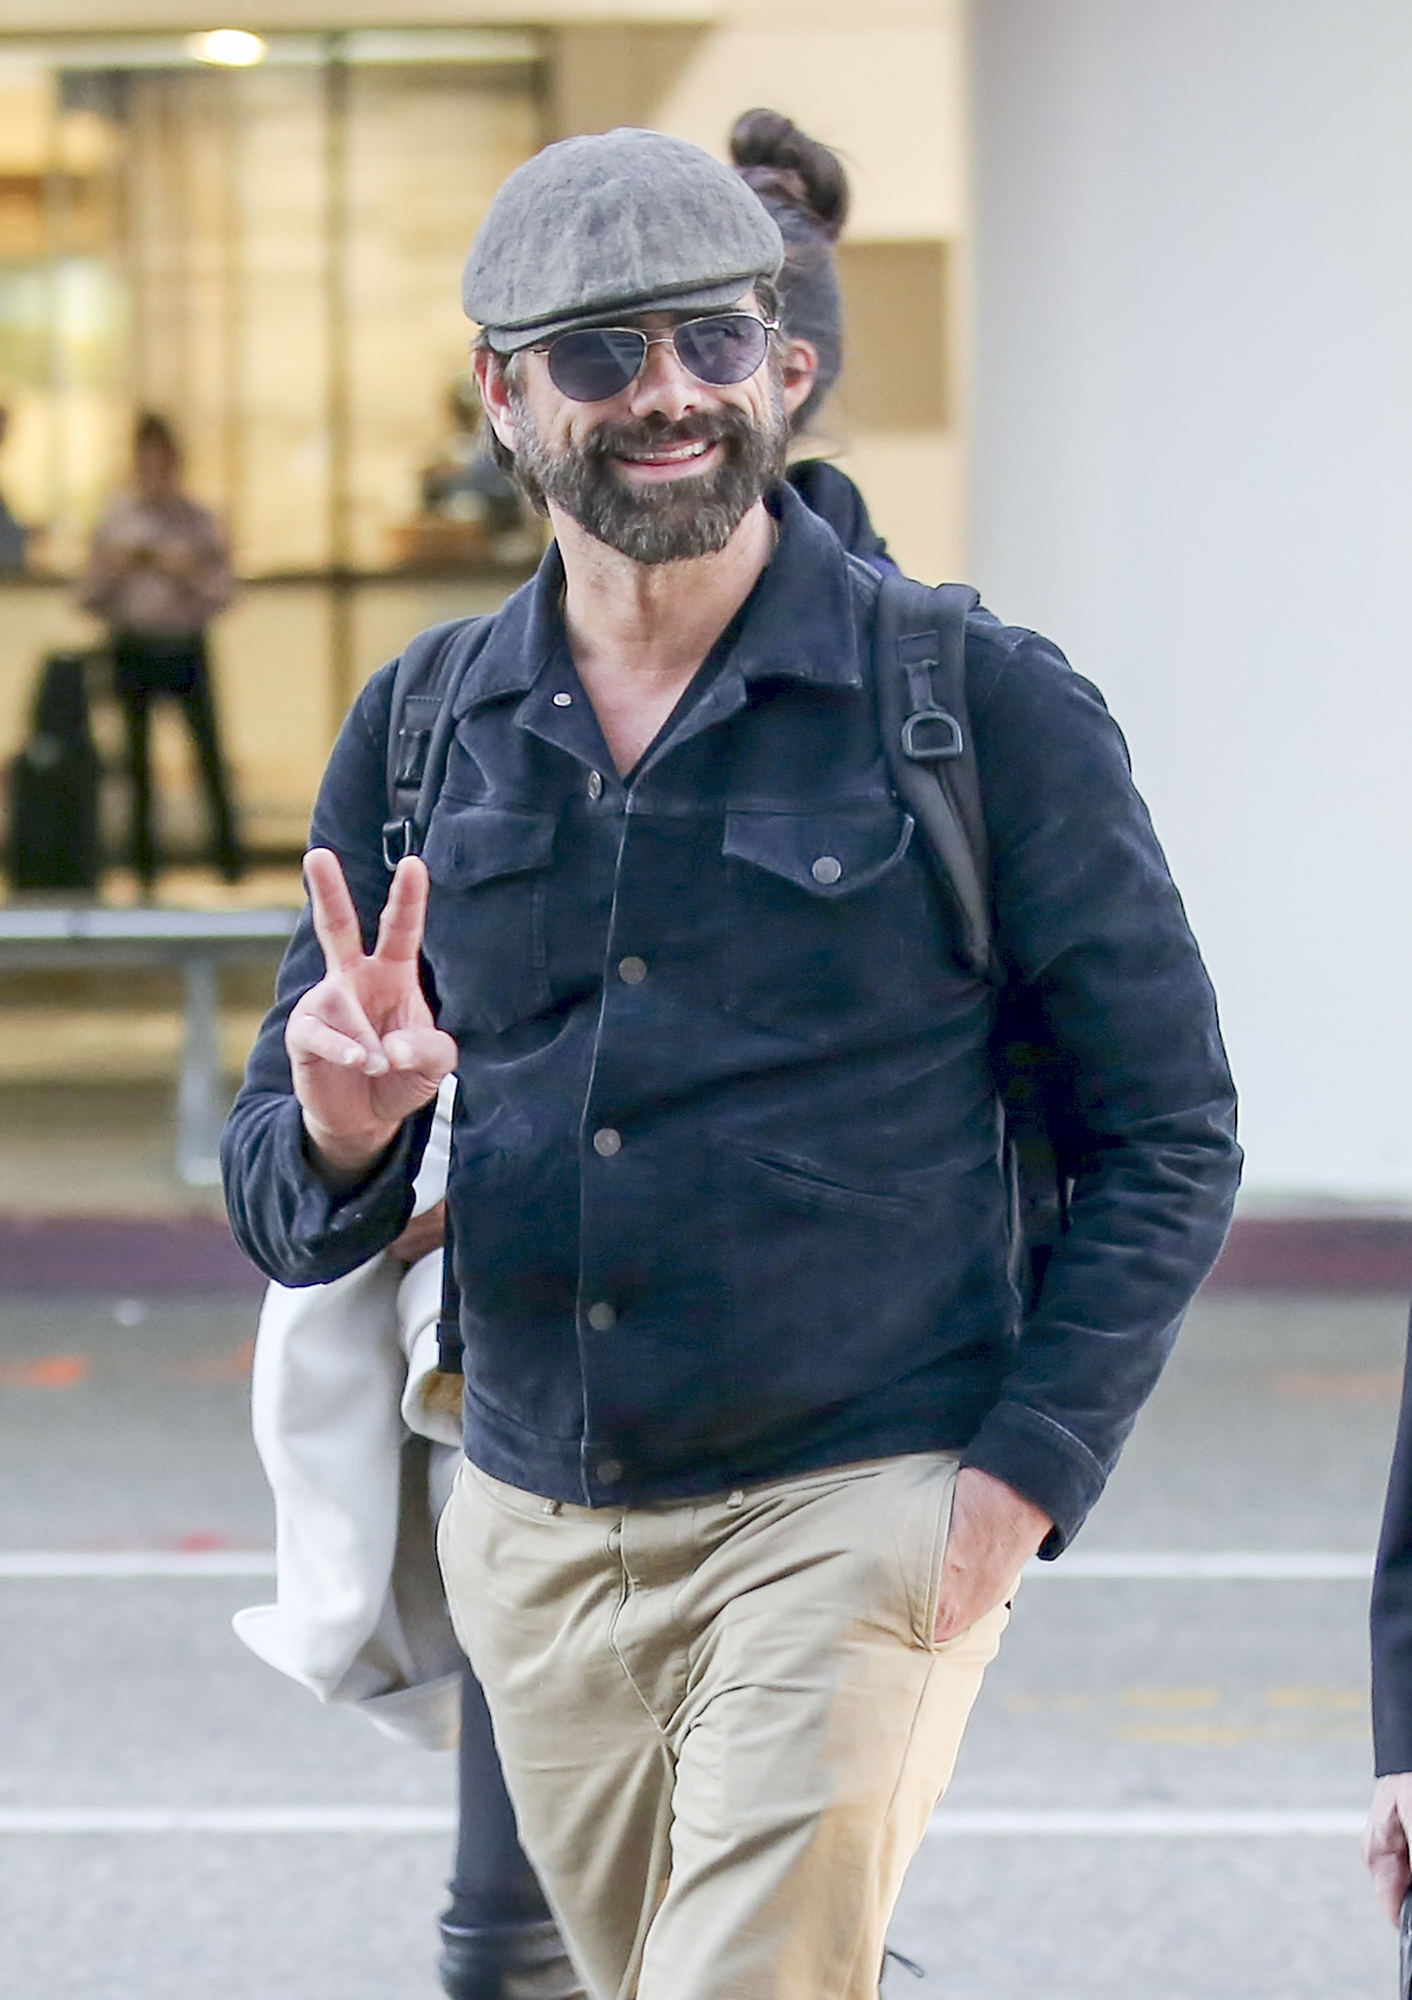 EXCLUSIVE: John Stamos is seen at LAX airport in Los Angeles